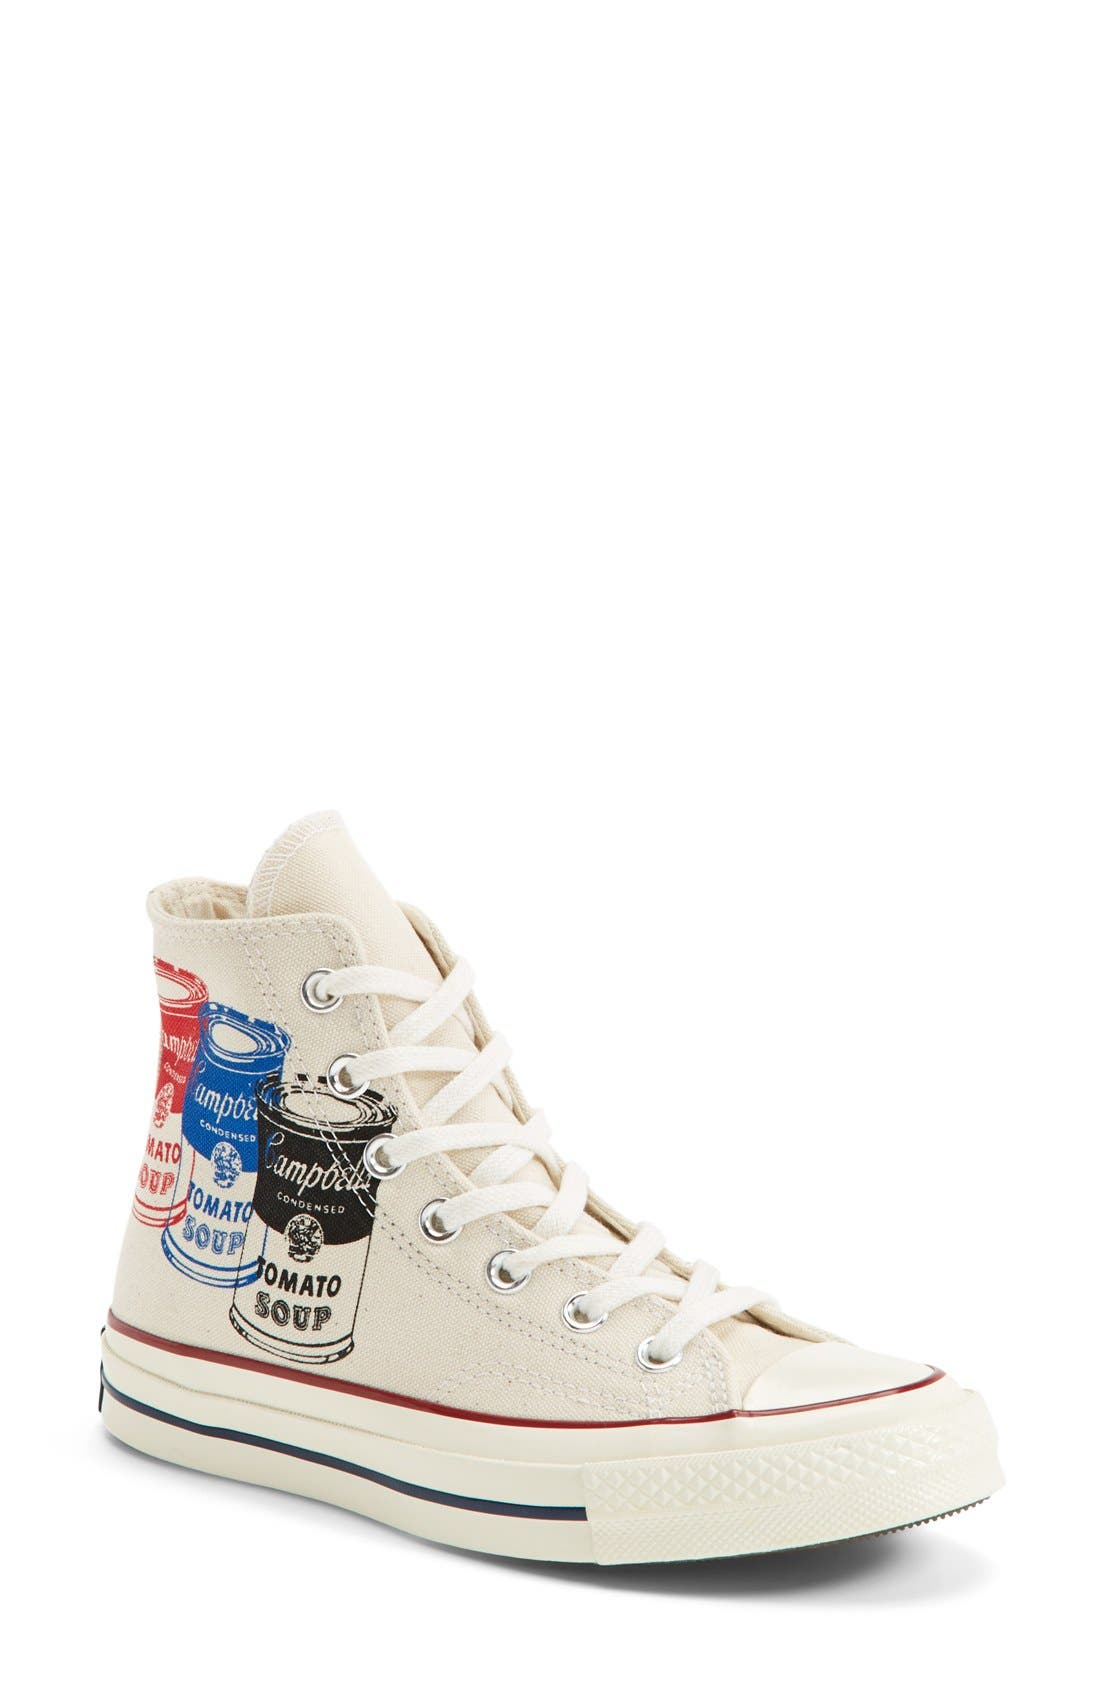 Main Image - Converse Chuck Taylor® All Star® '70 Andy Warhol Collection High Top Sneaker (Women)